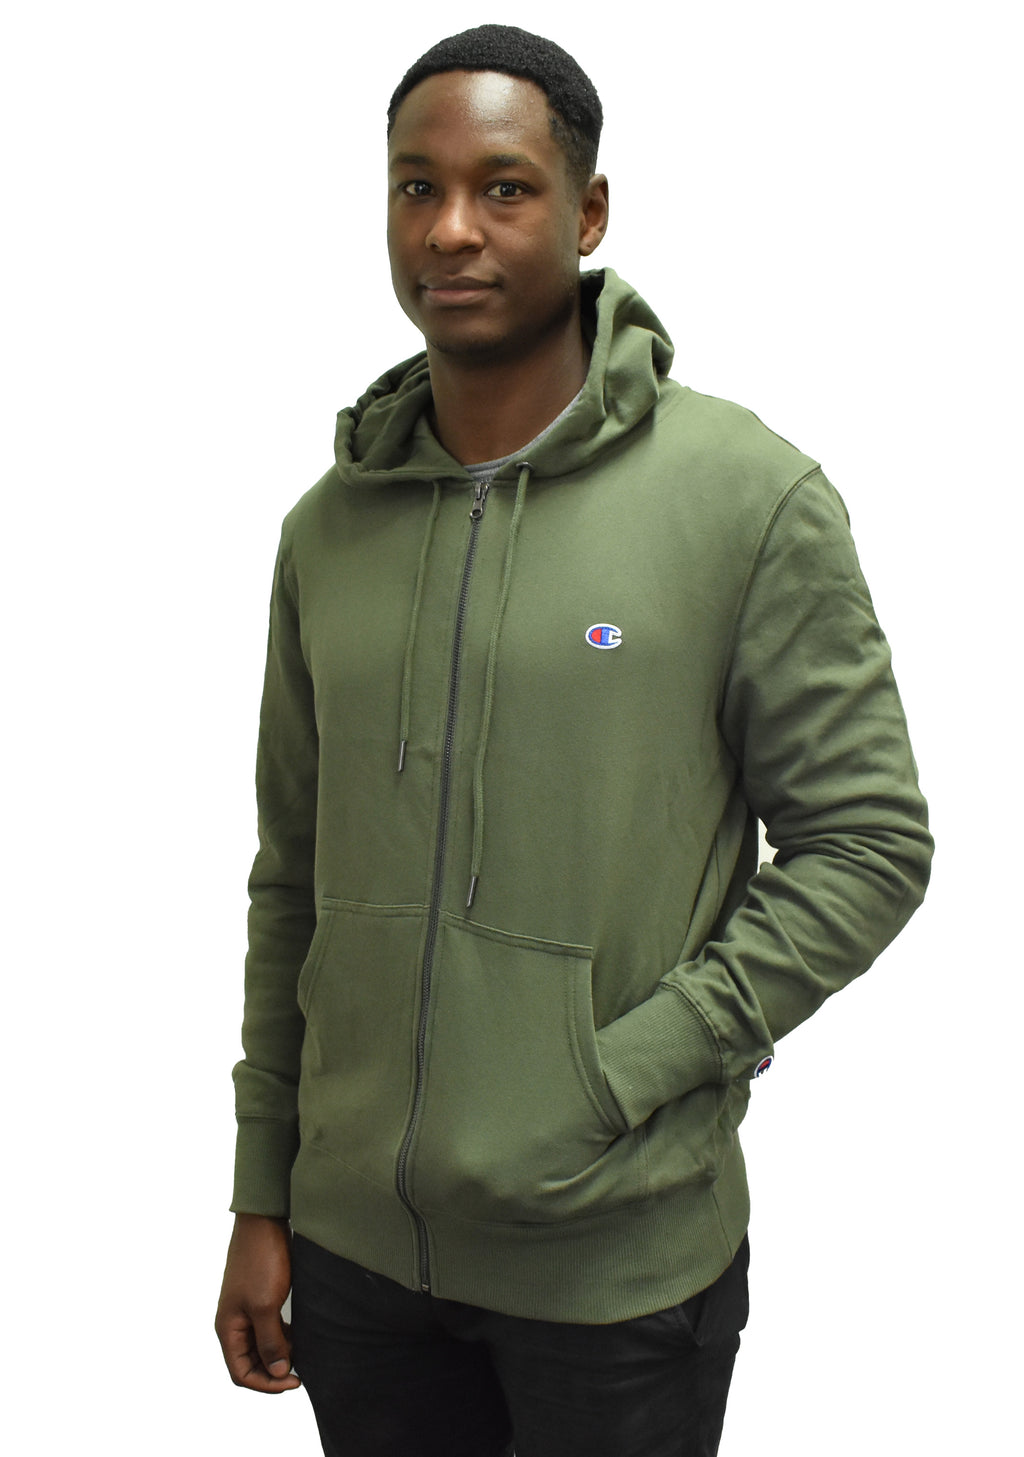 CHAMPION C LOGO ZIP HOODIE MENS SIX IRON KHAKI <br> AXXAN DHK